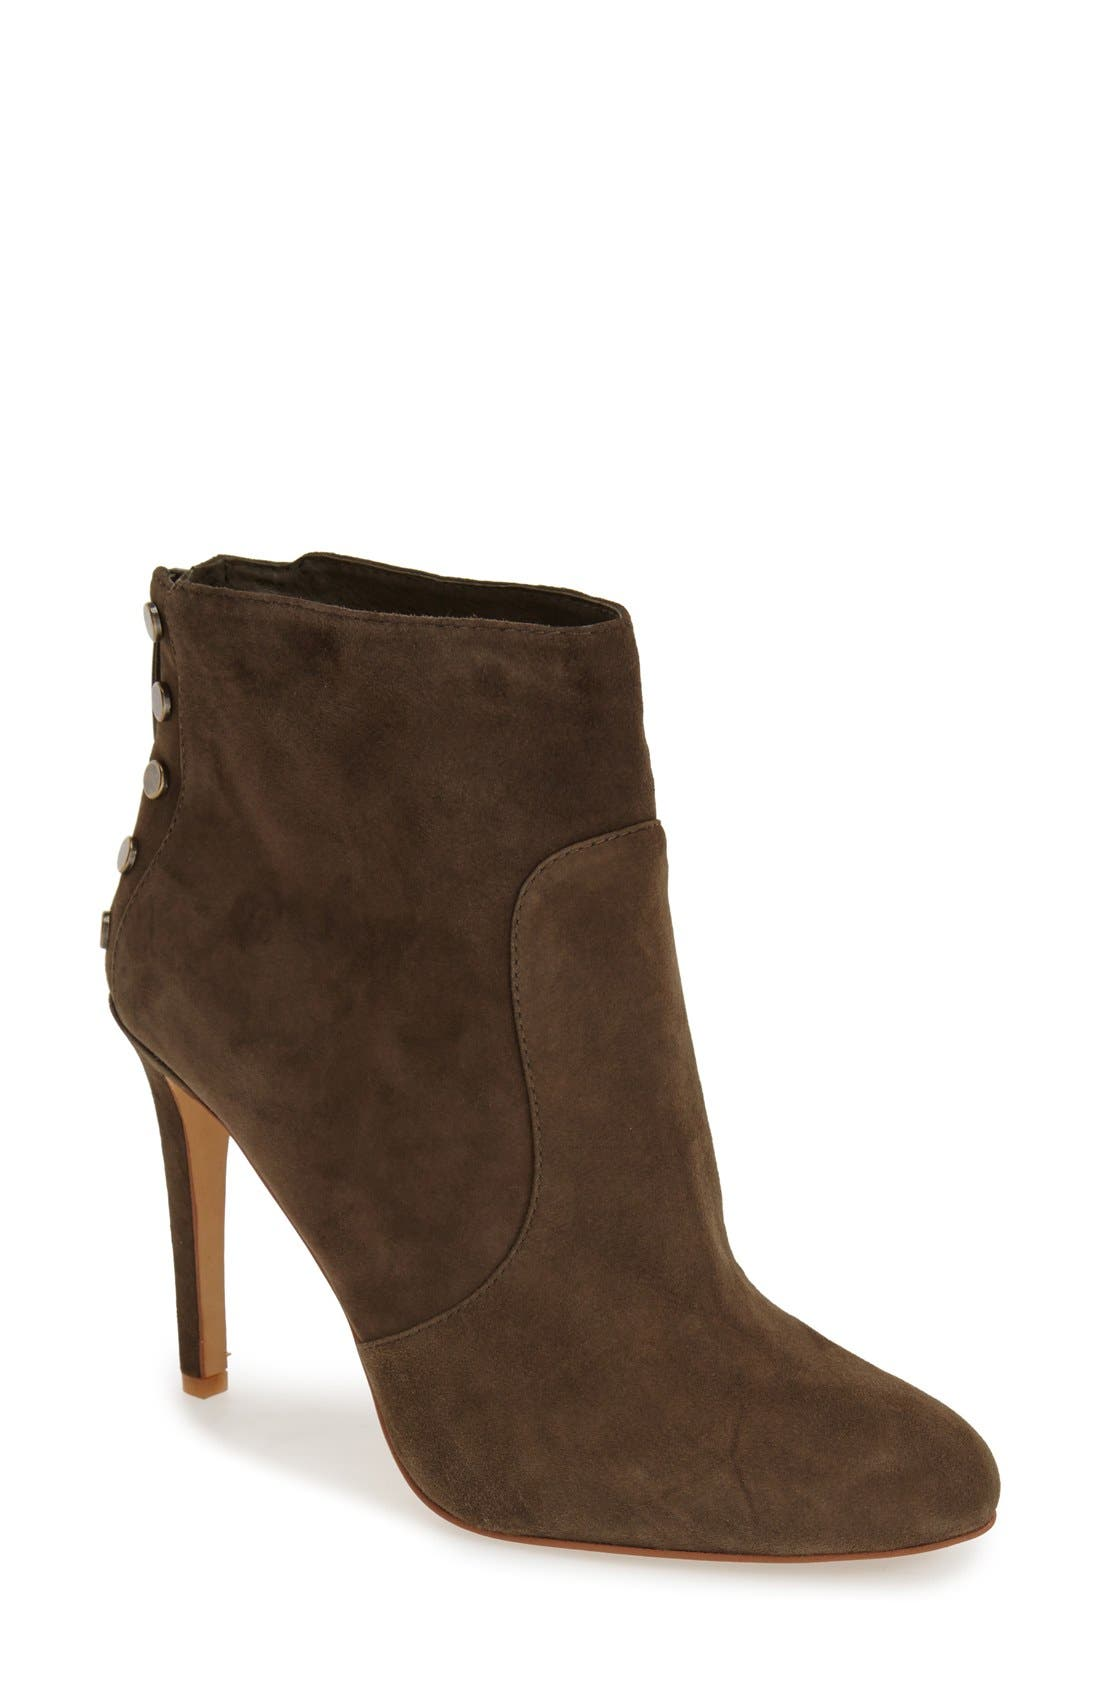 Main Image - Vince Camuto 'Bustell' Studded Bootie (Women)